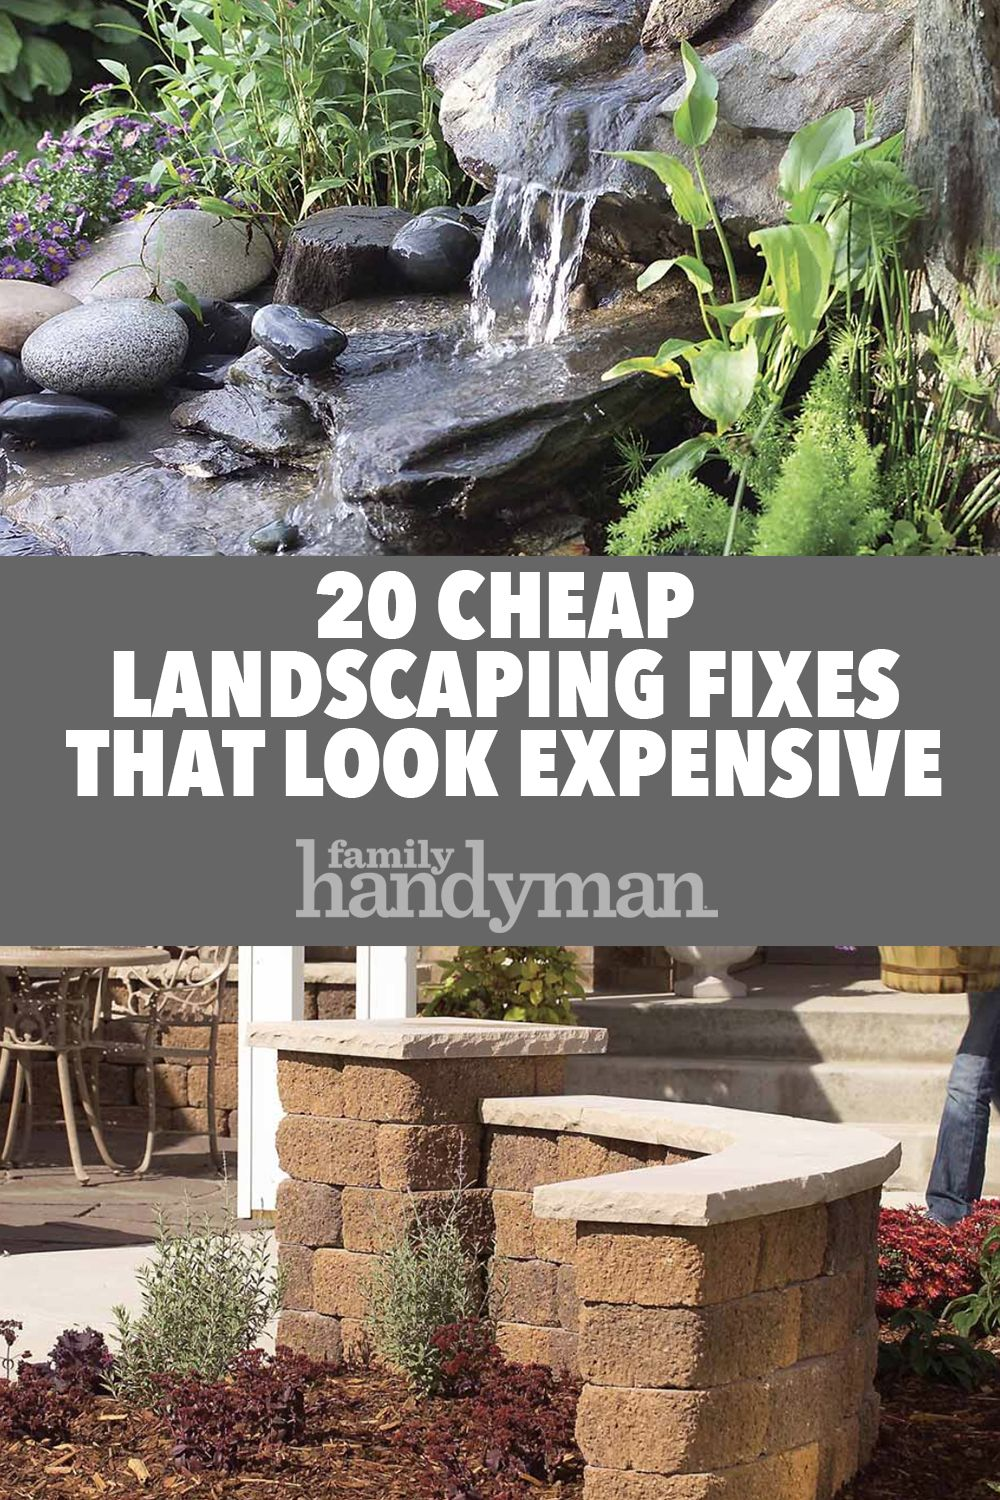 20 Cheap Landscaping Fixes That Look Expensive